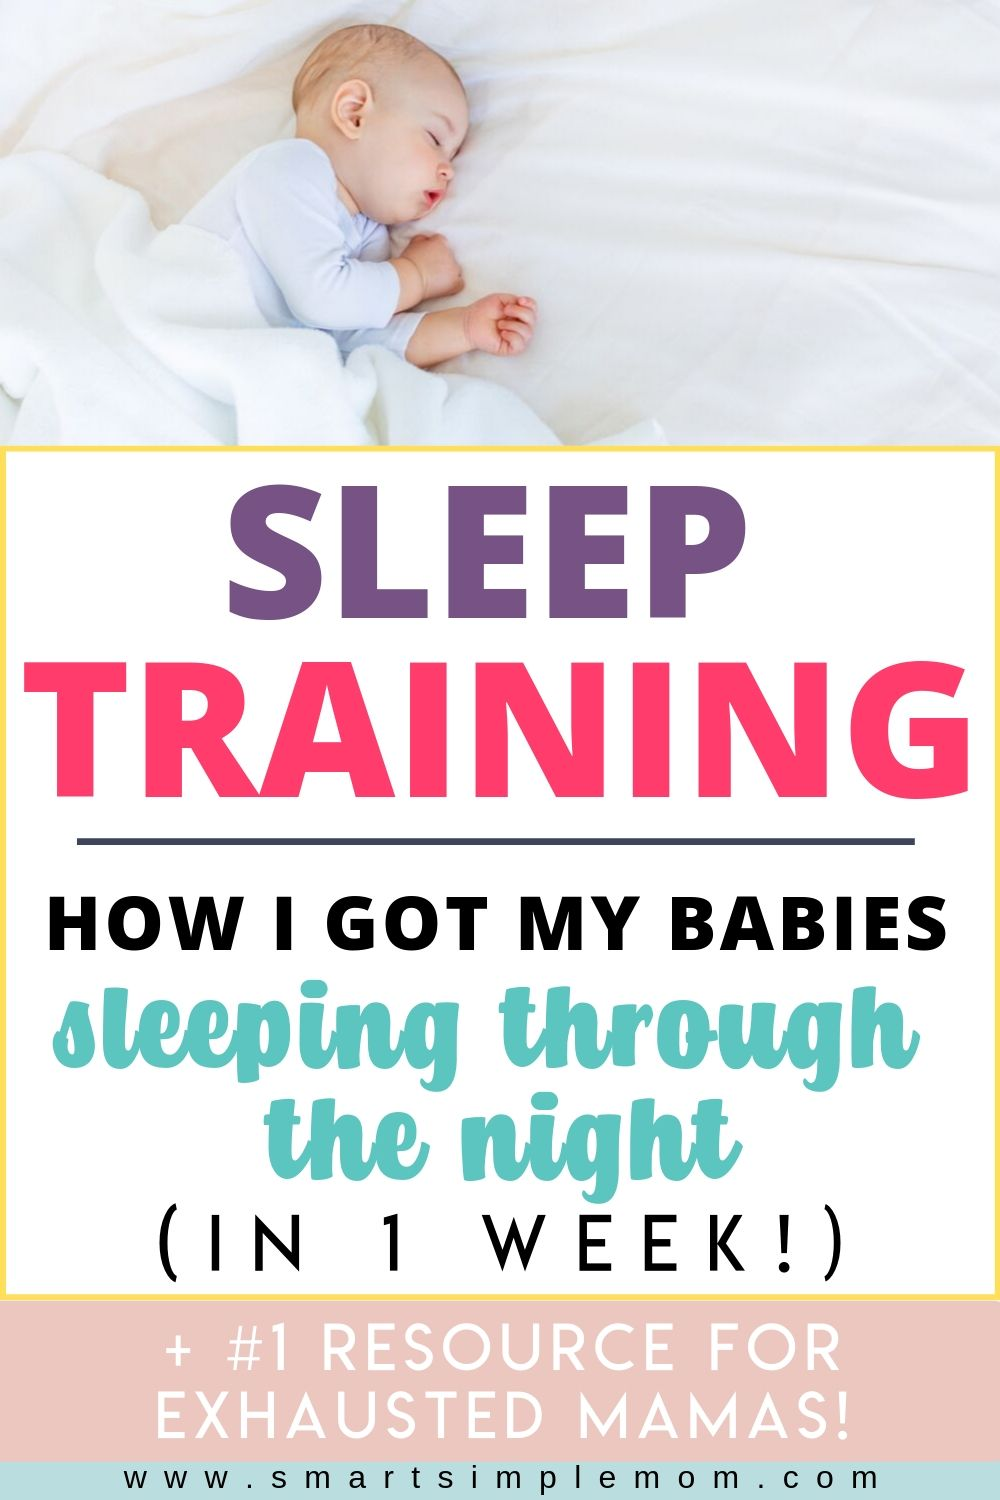 Find out how I got my babies to sleep through the night in less than 1 week with these SLEEP TRAINING TIPS! (Including options for cry it out or NO CRY method)